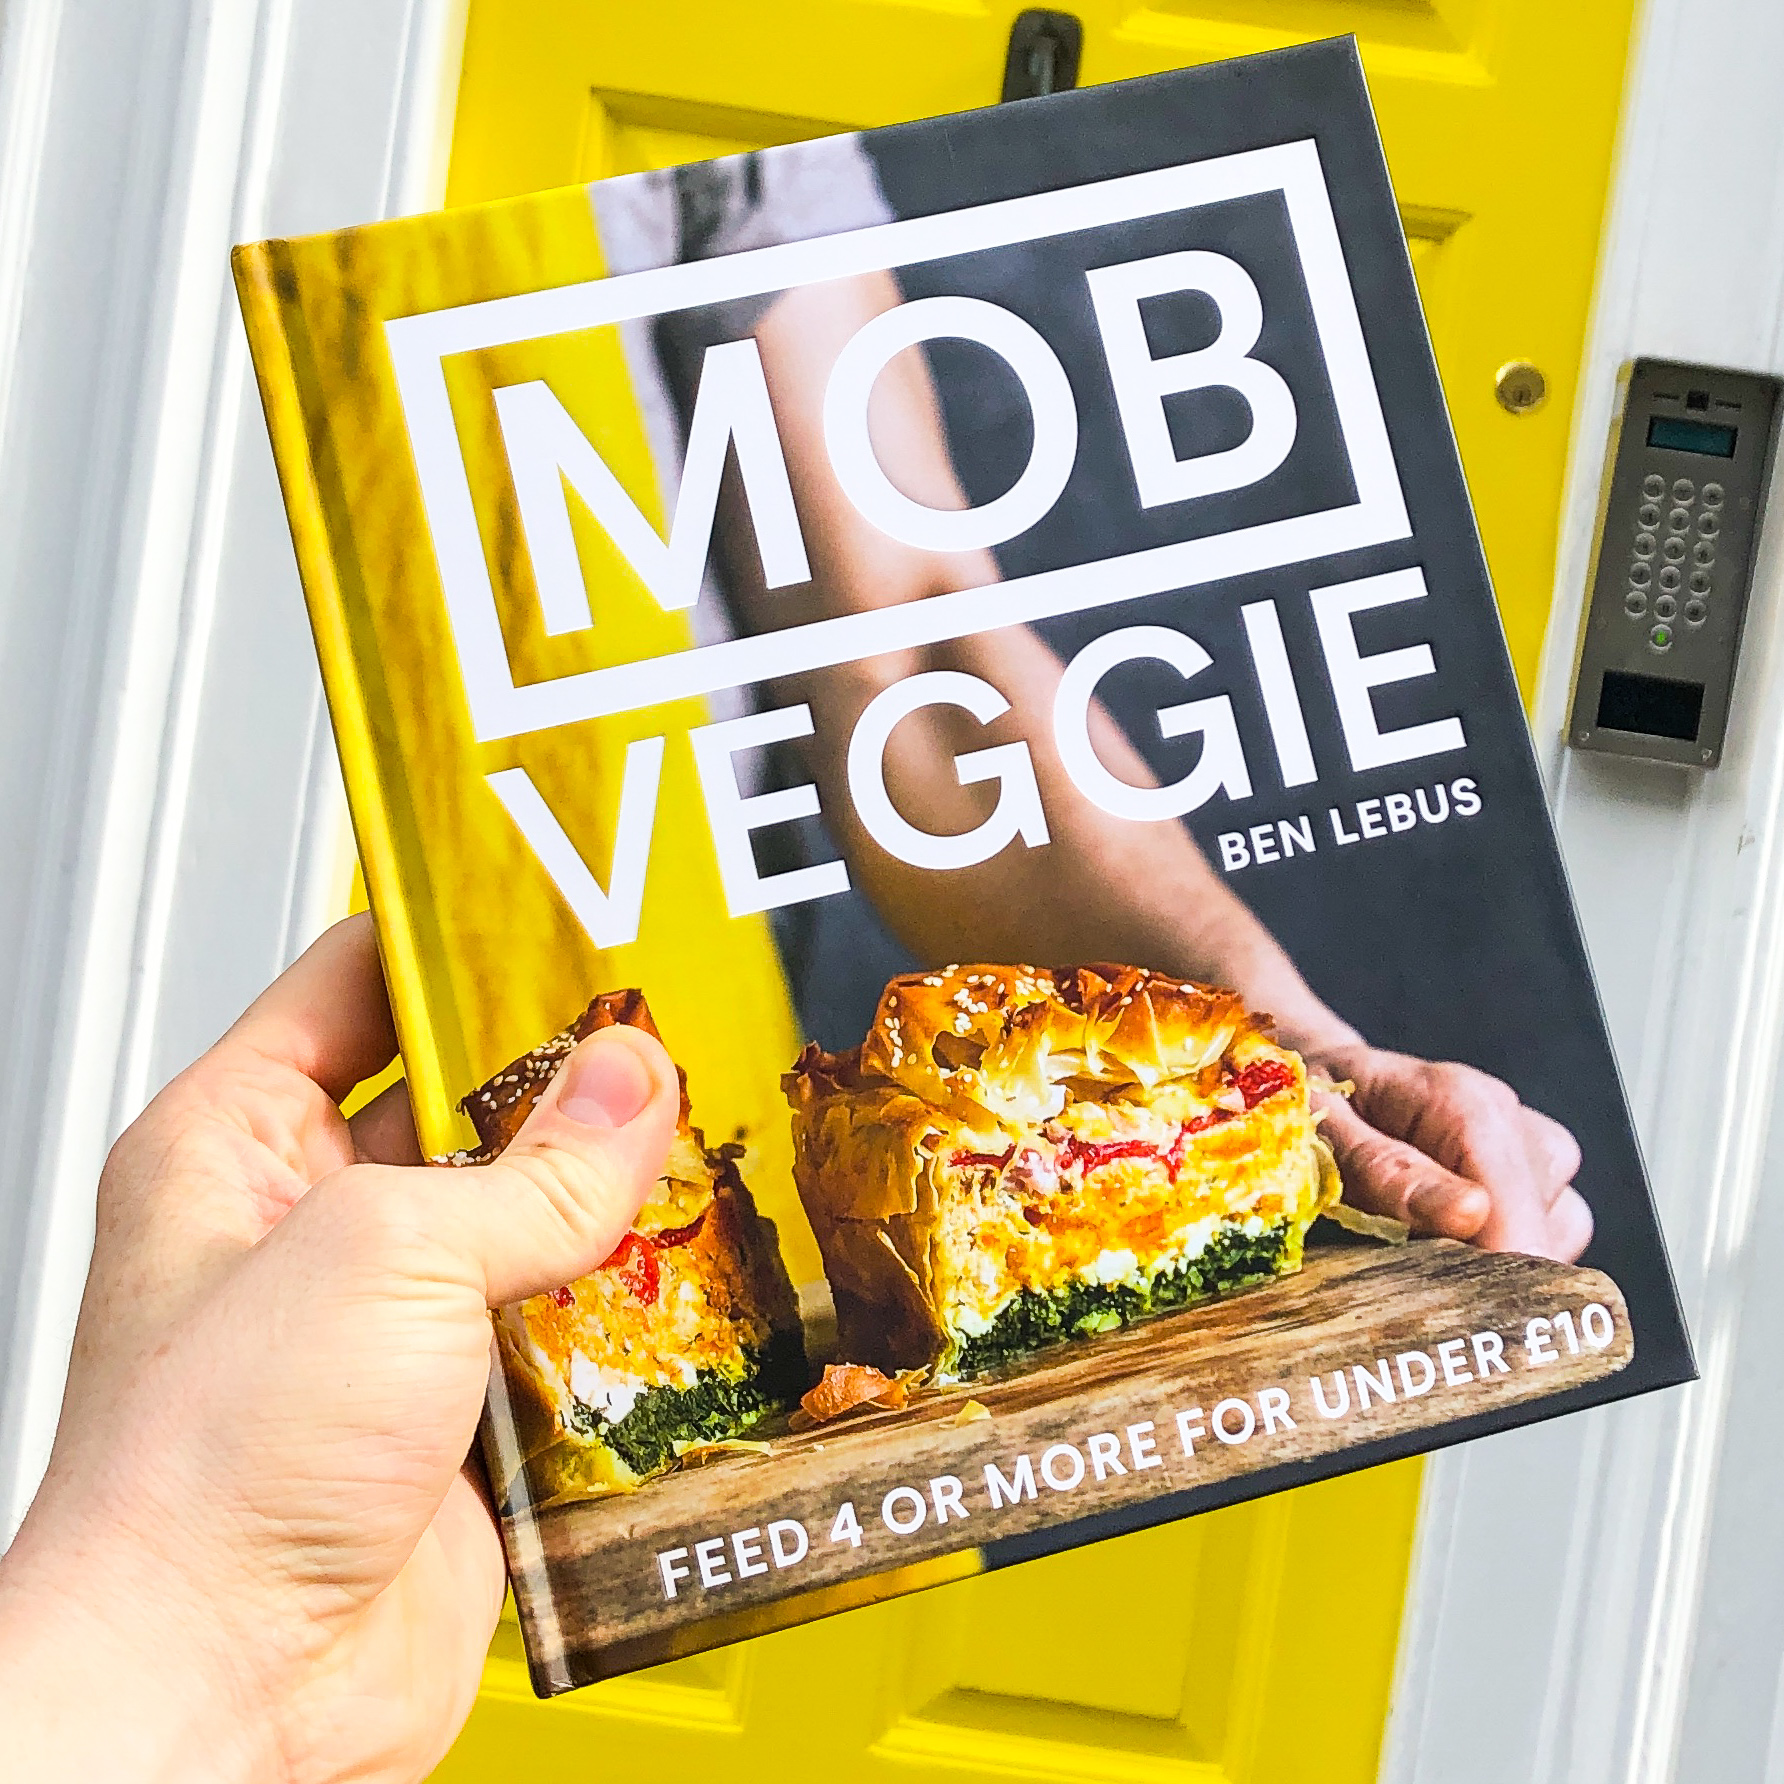 MOB VEGGIE IS OUT NOW! - Order here... https://amzn.to/2R04lU9